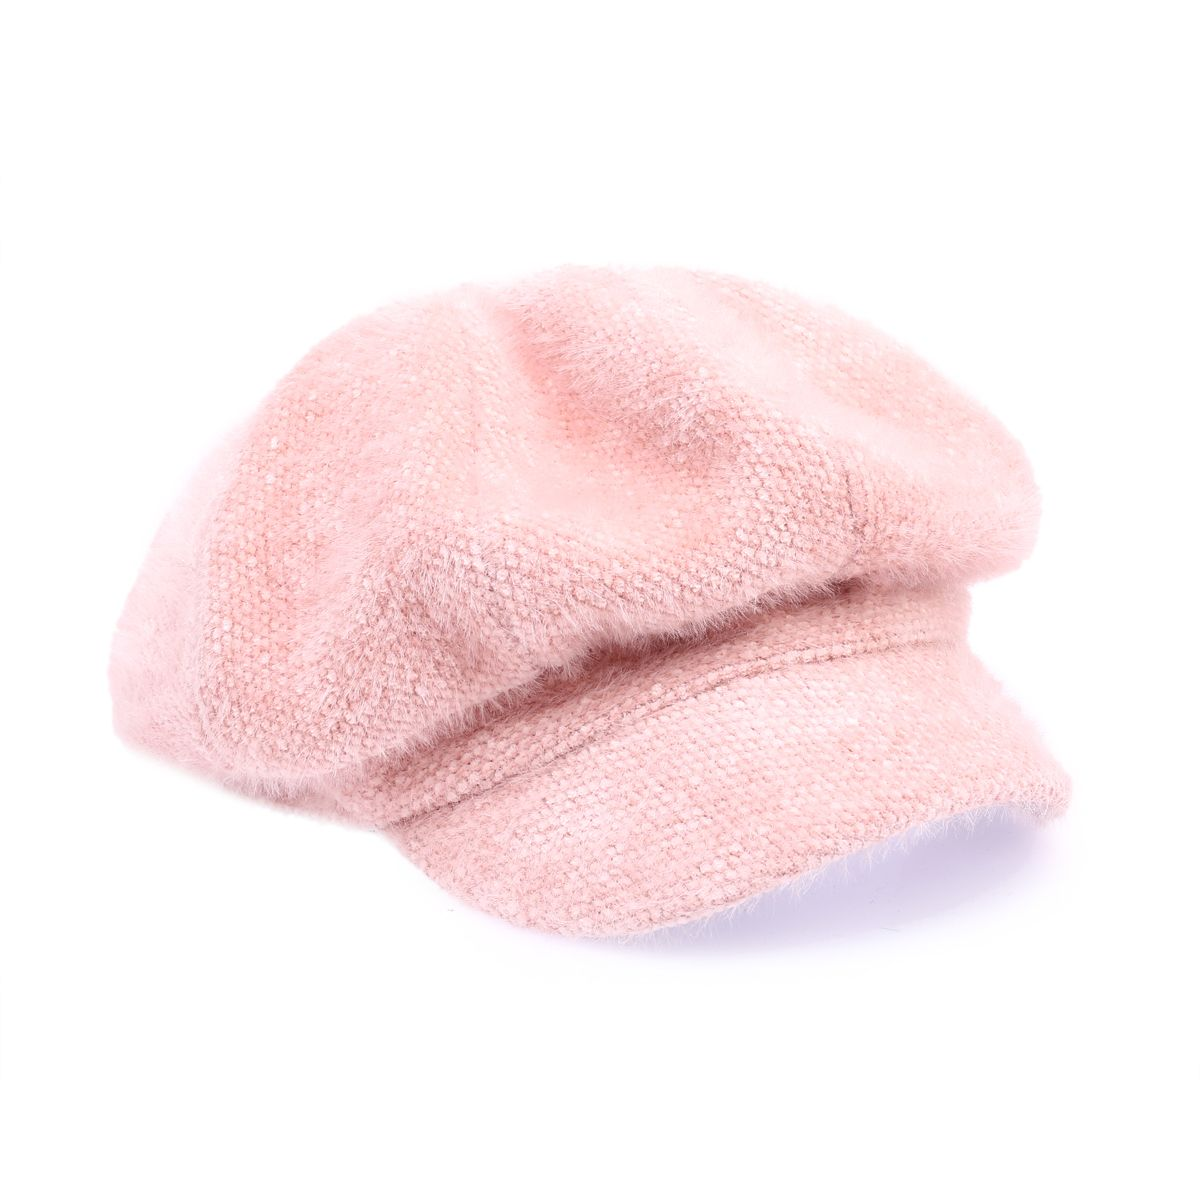 Casquette plate rose duveteuse style gavroche